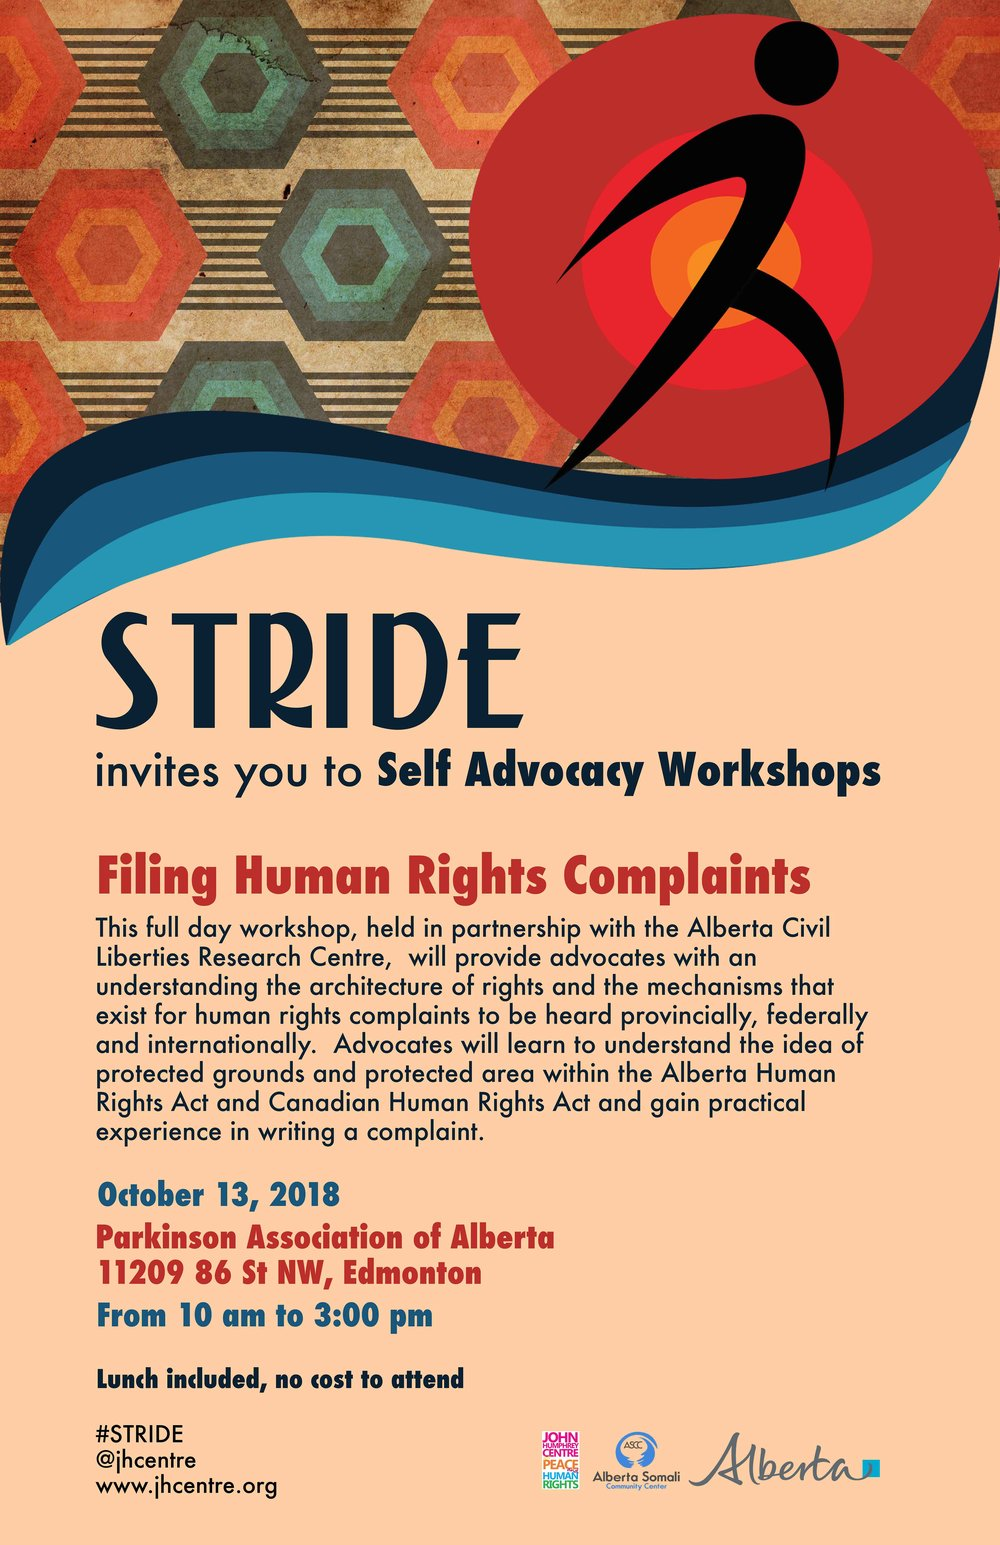 Stride Human Rights Complaint - Edmonton workshop